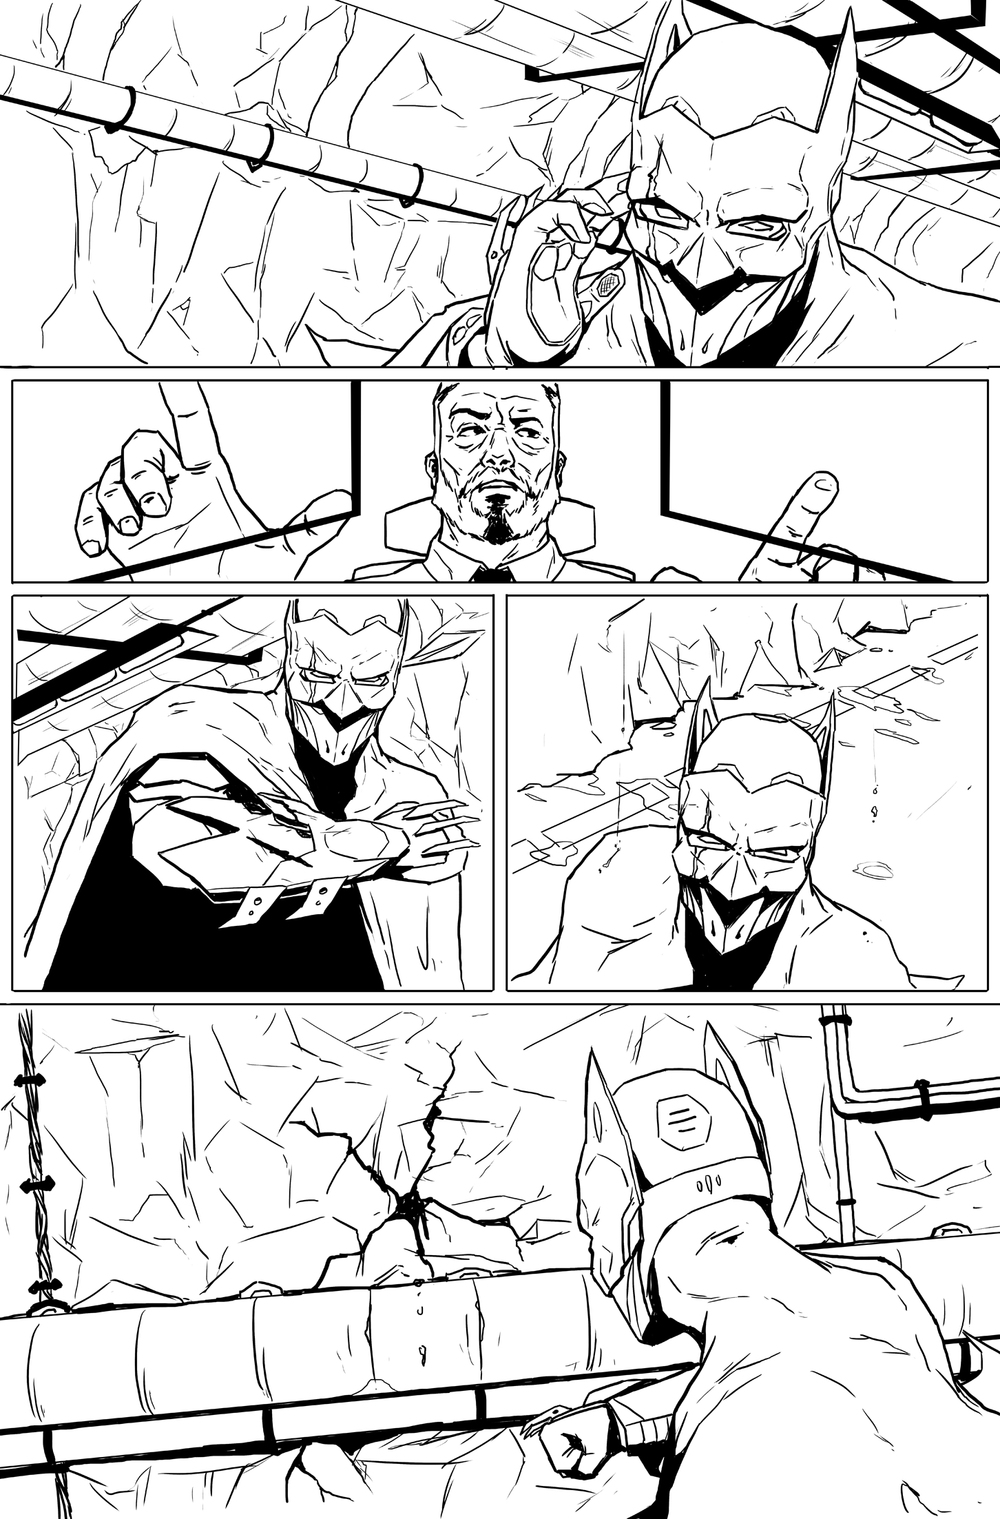 Batman_comic_inks_p1_o.jpg